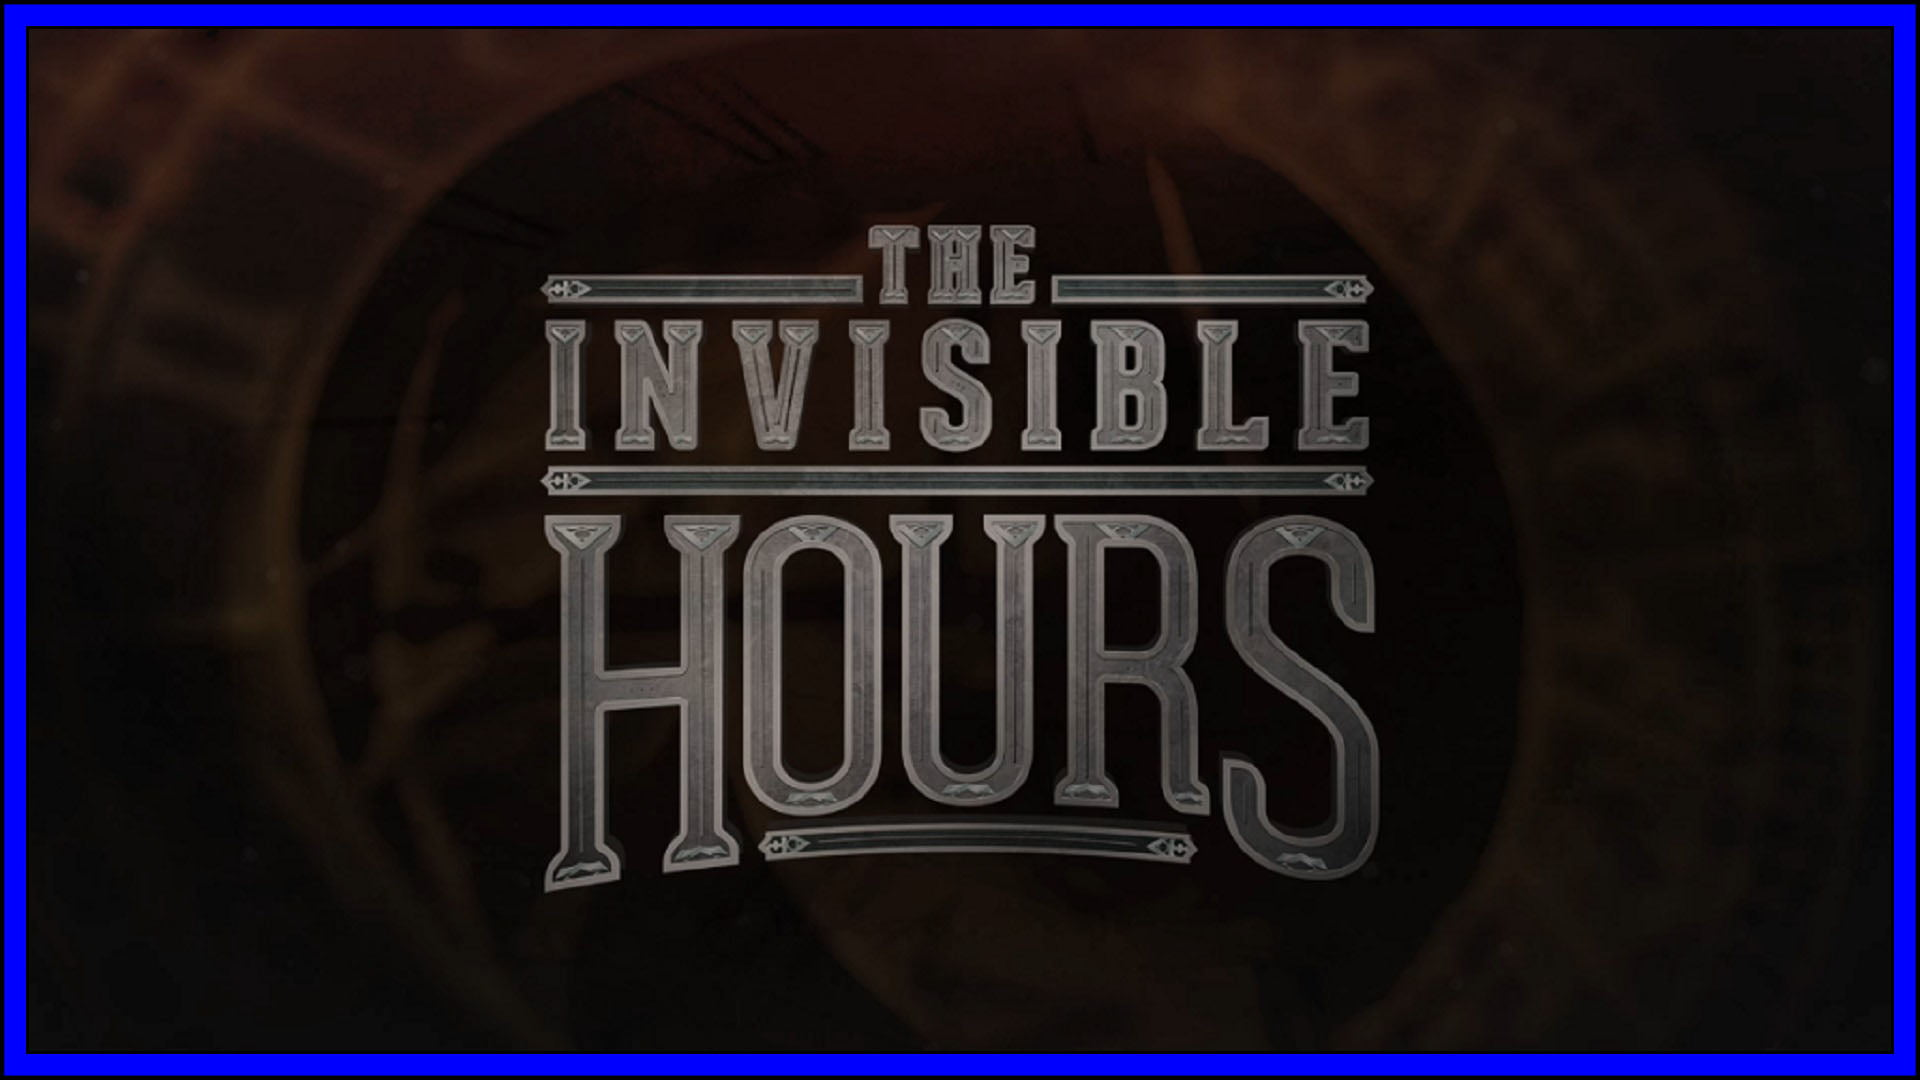 The Invisible Hours Fi3